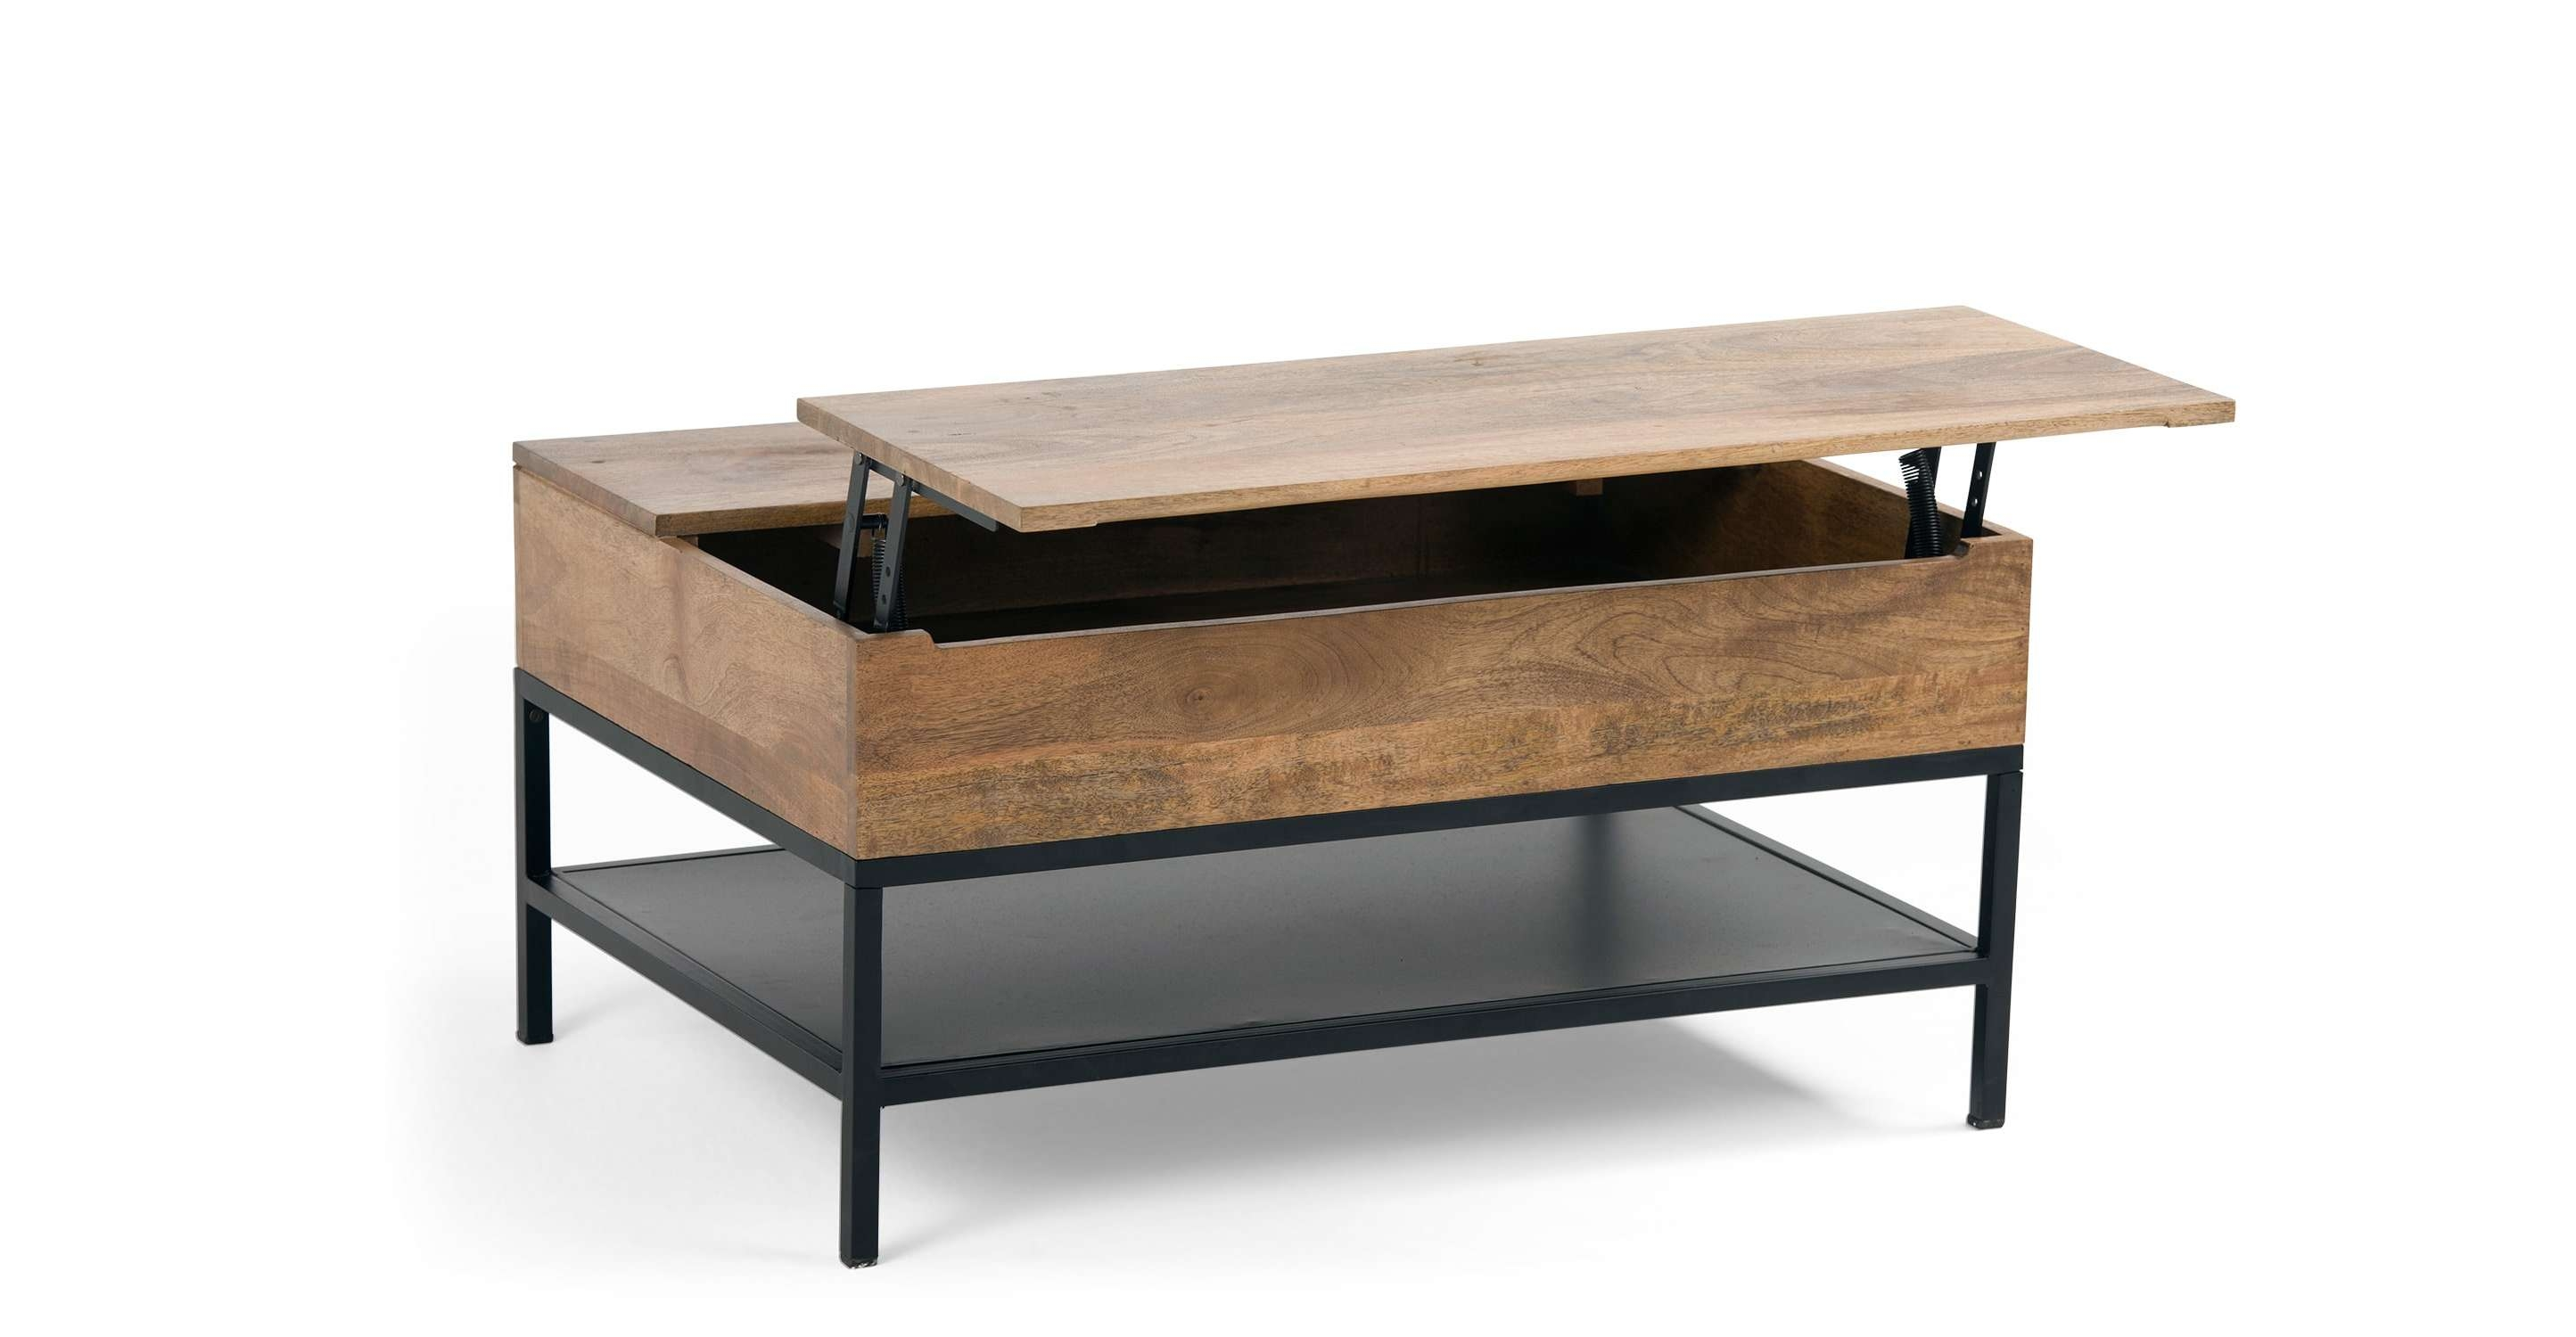 Famous Mango Wood Coffee Tables Inside Coffee Tables : Beautiful Mango Wood Coffee Table On Small Home (View 9 of 20)